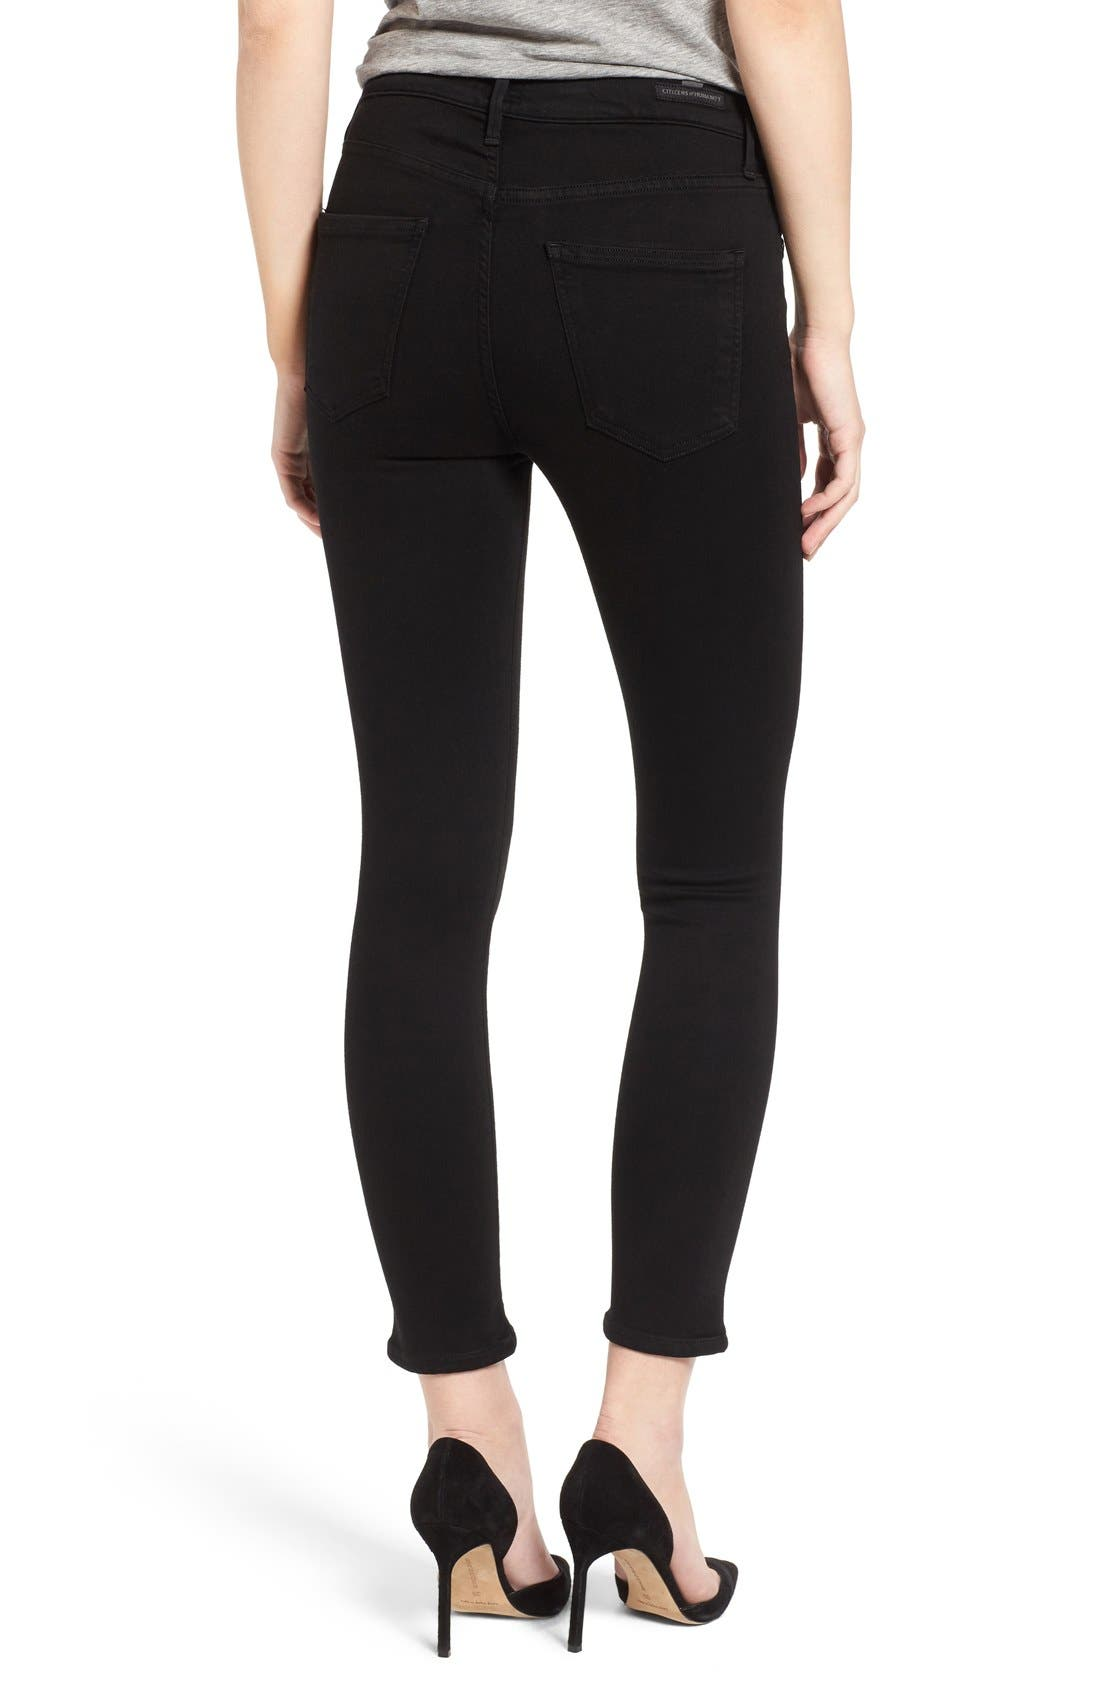 Rocket High Rise Crop Skinny Jeans,                             Alternate thumbnail 2, color,                             All Black